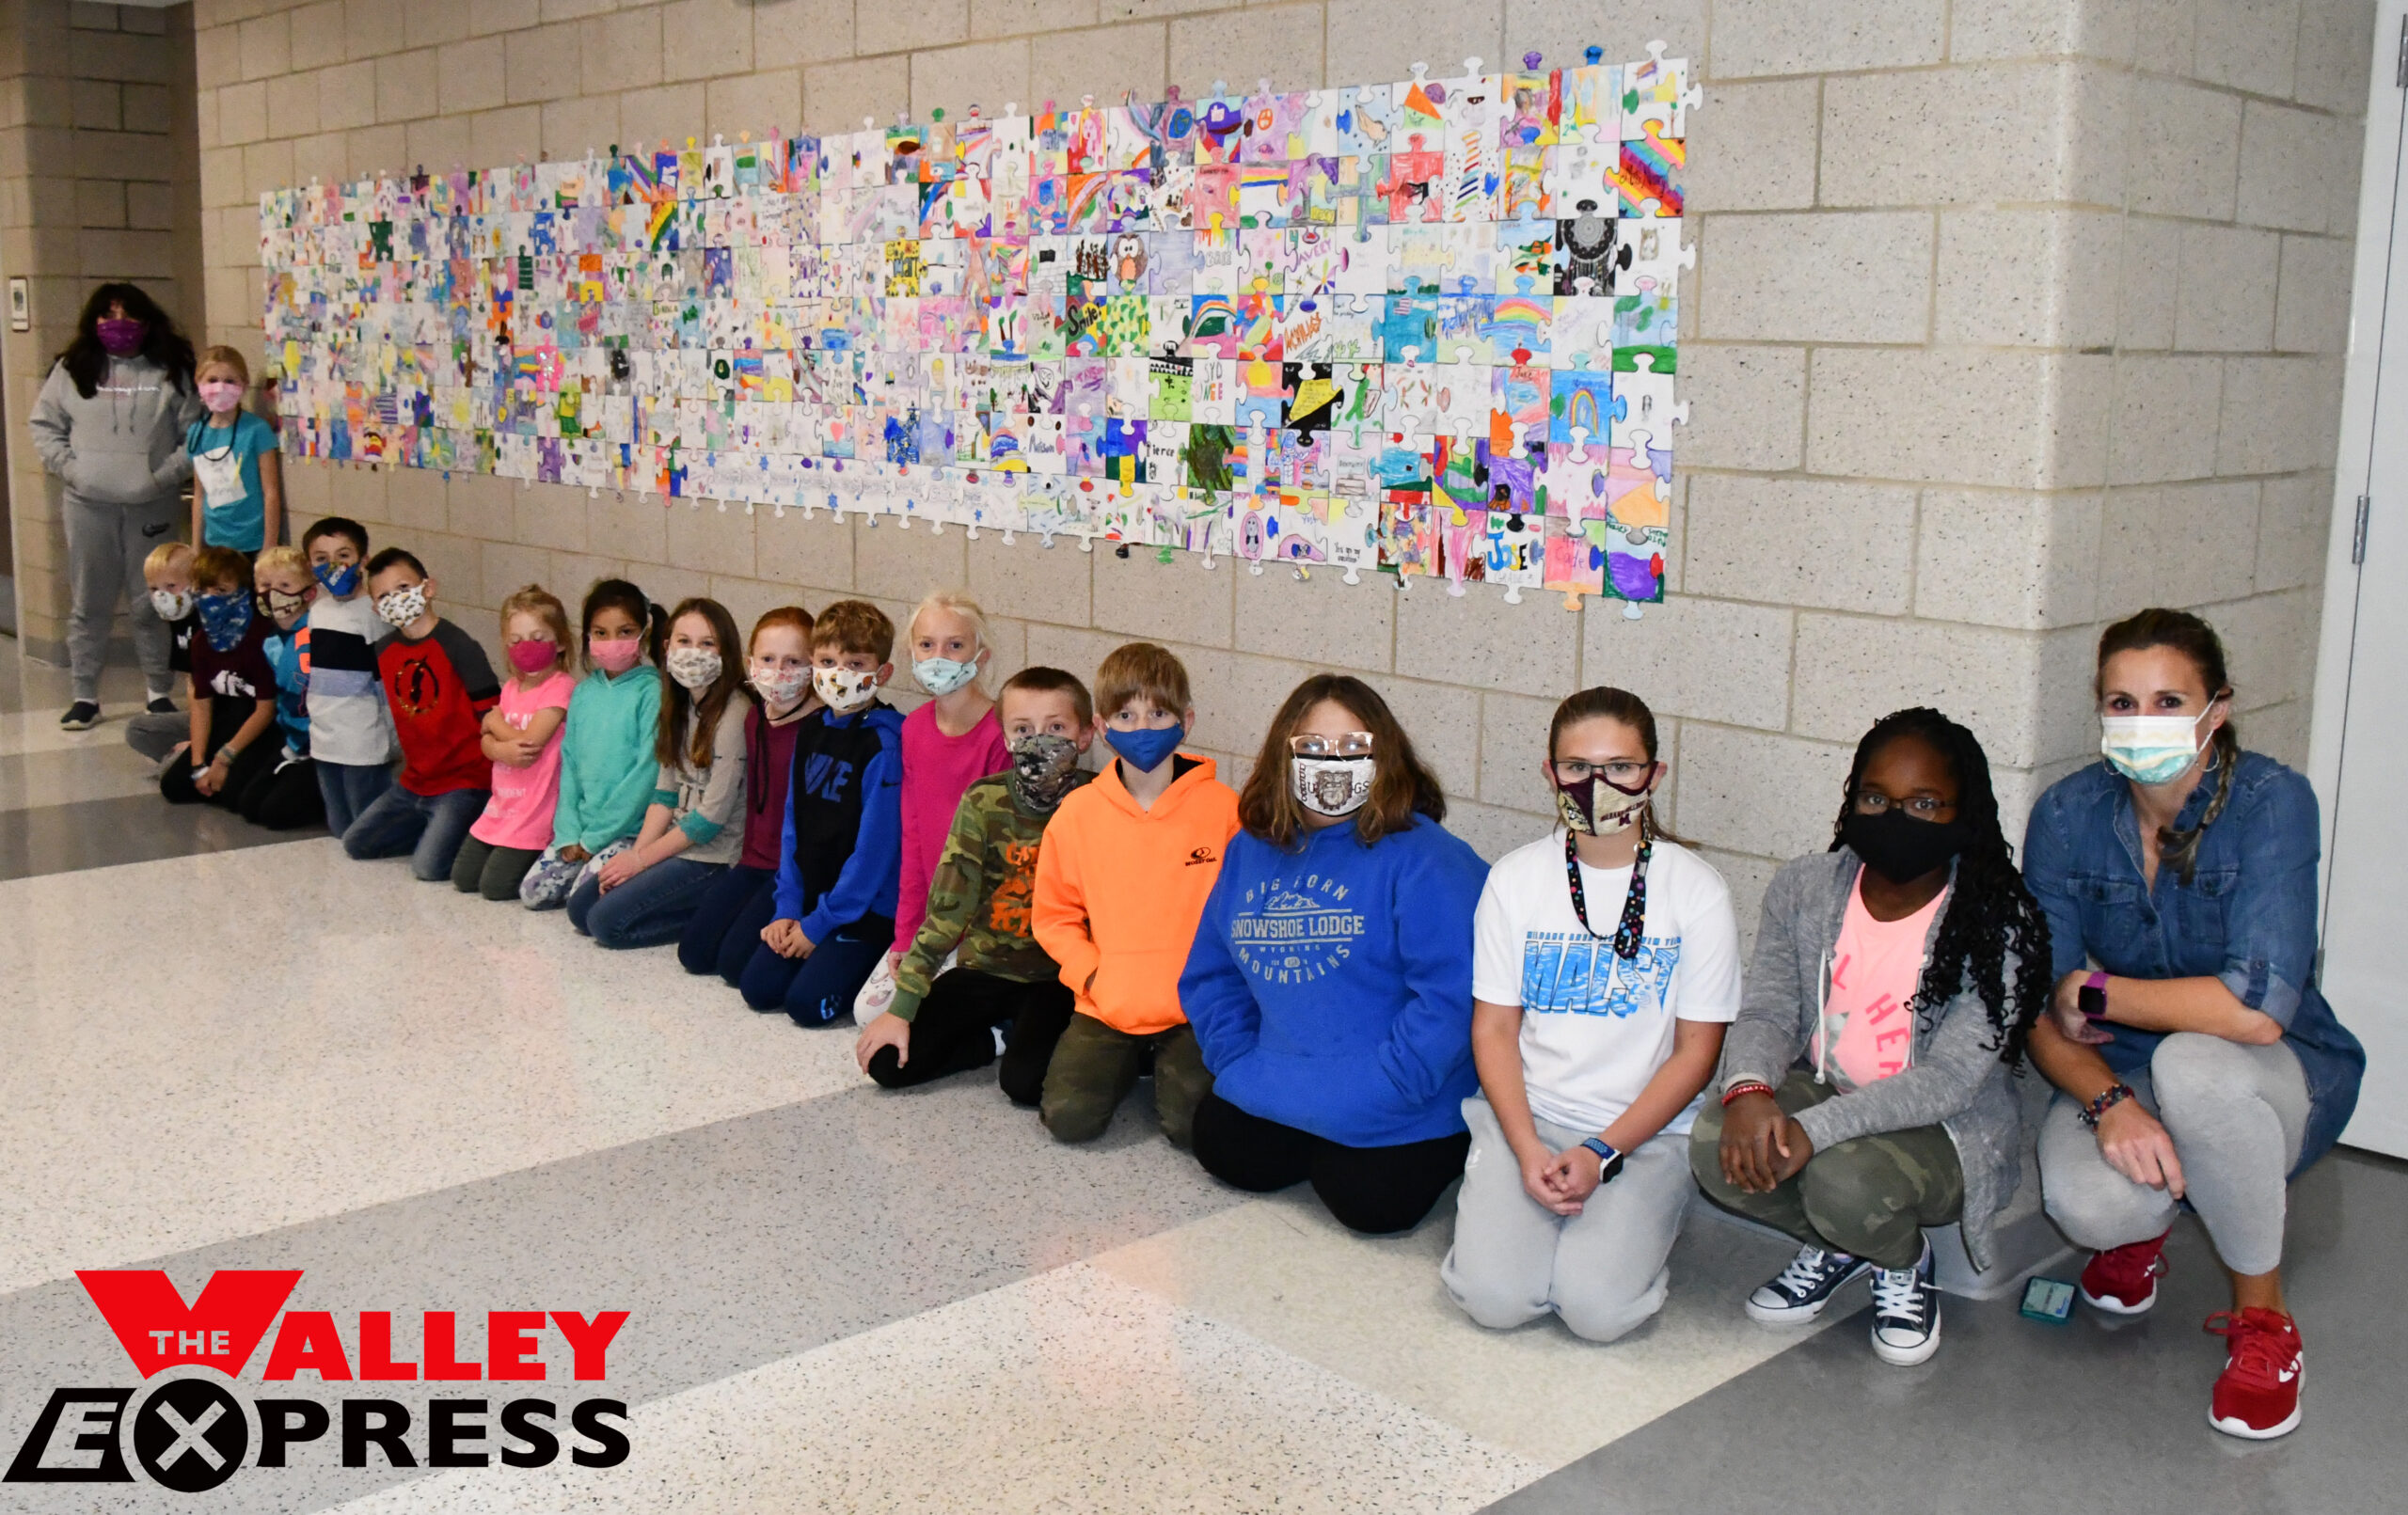 Puzzle-Piece Mural Brightens Milbank Elementary